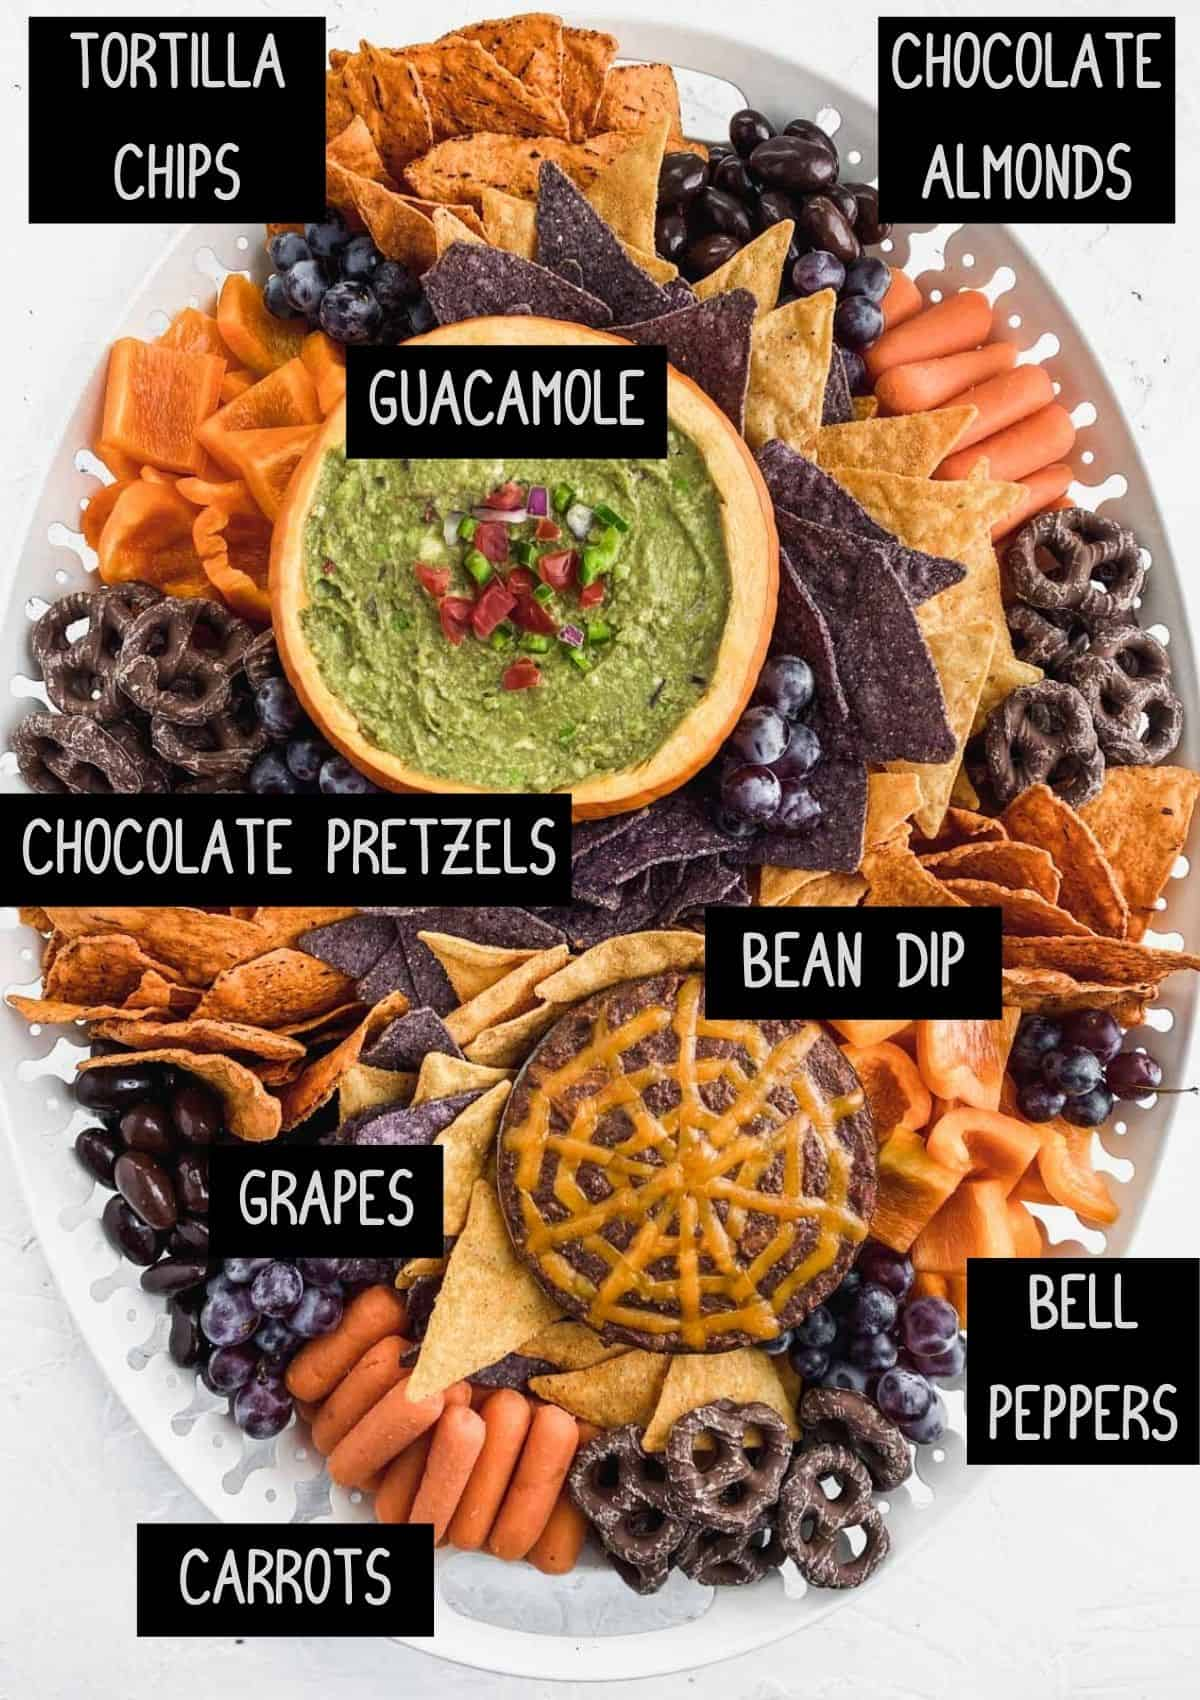 Labelled snack board ingredients (see recipe for details).